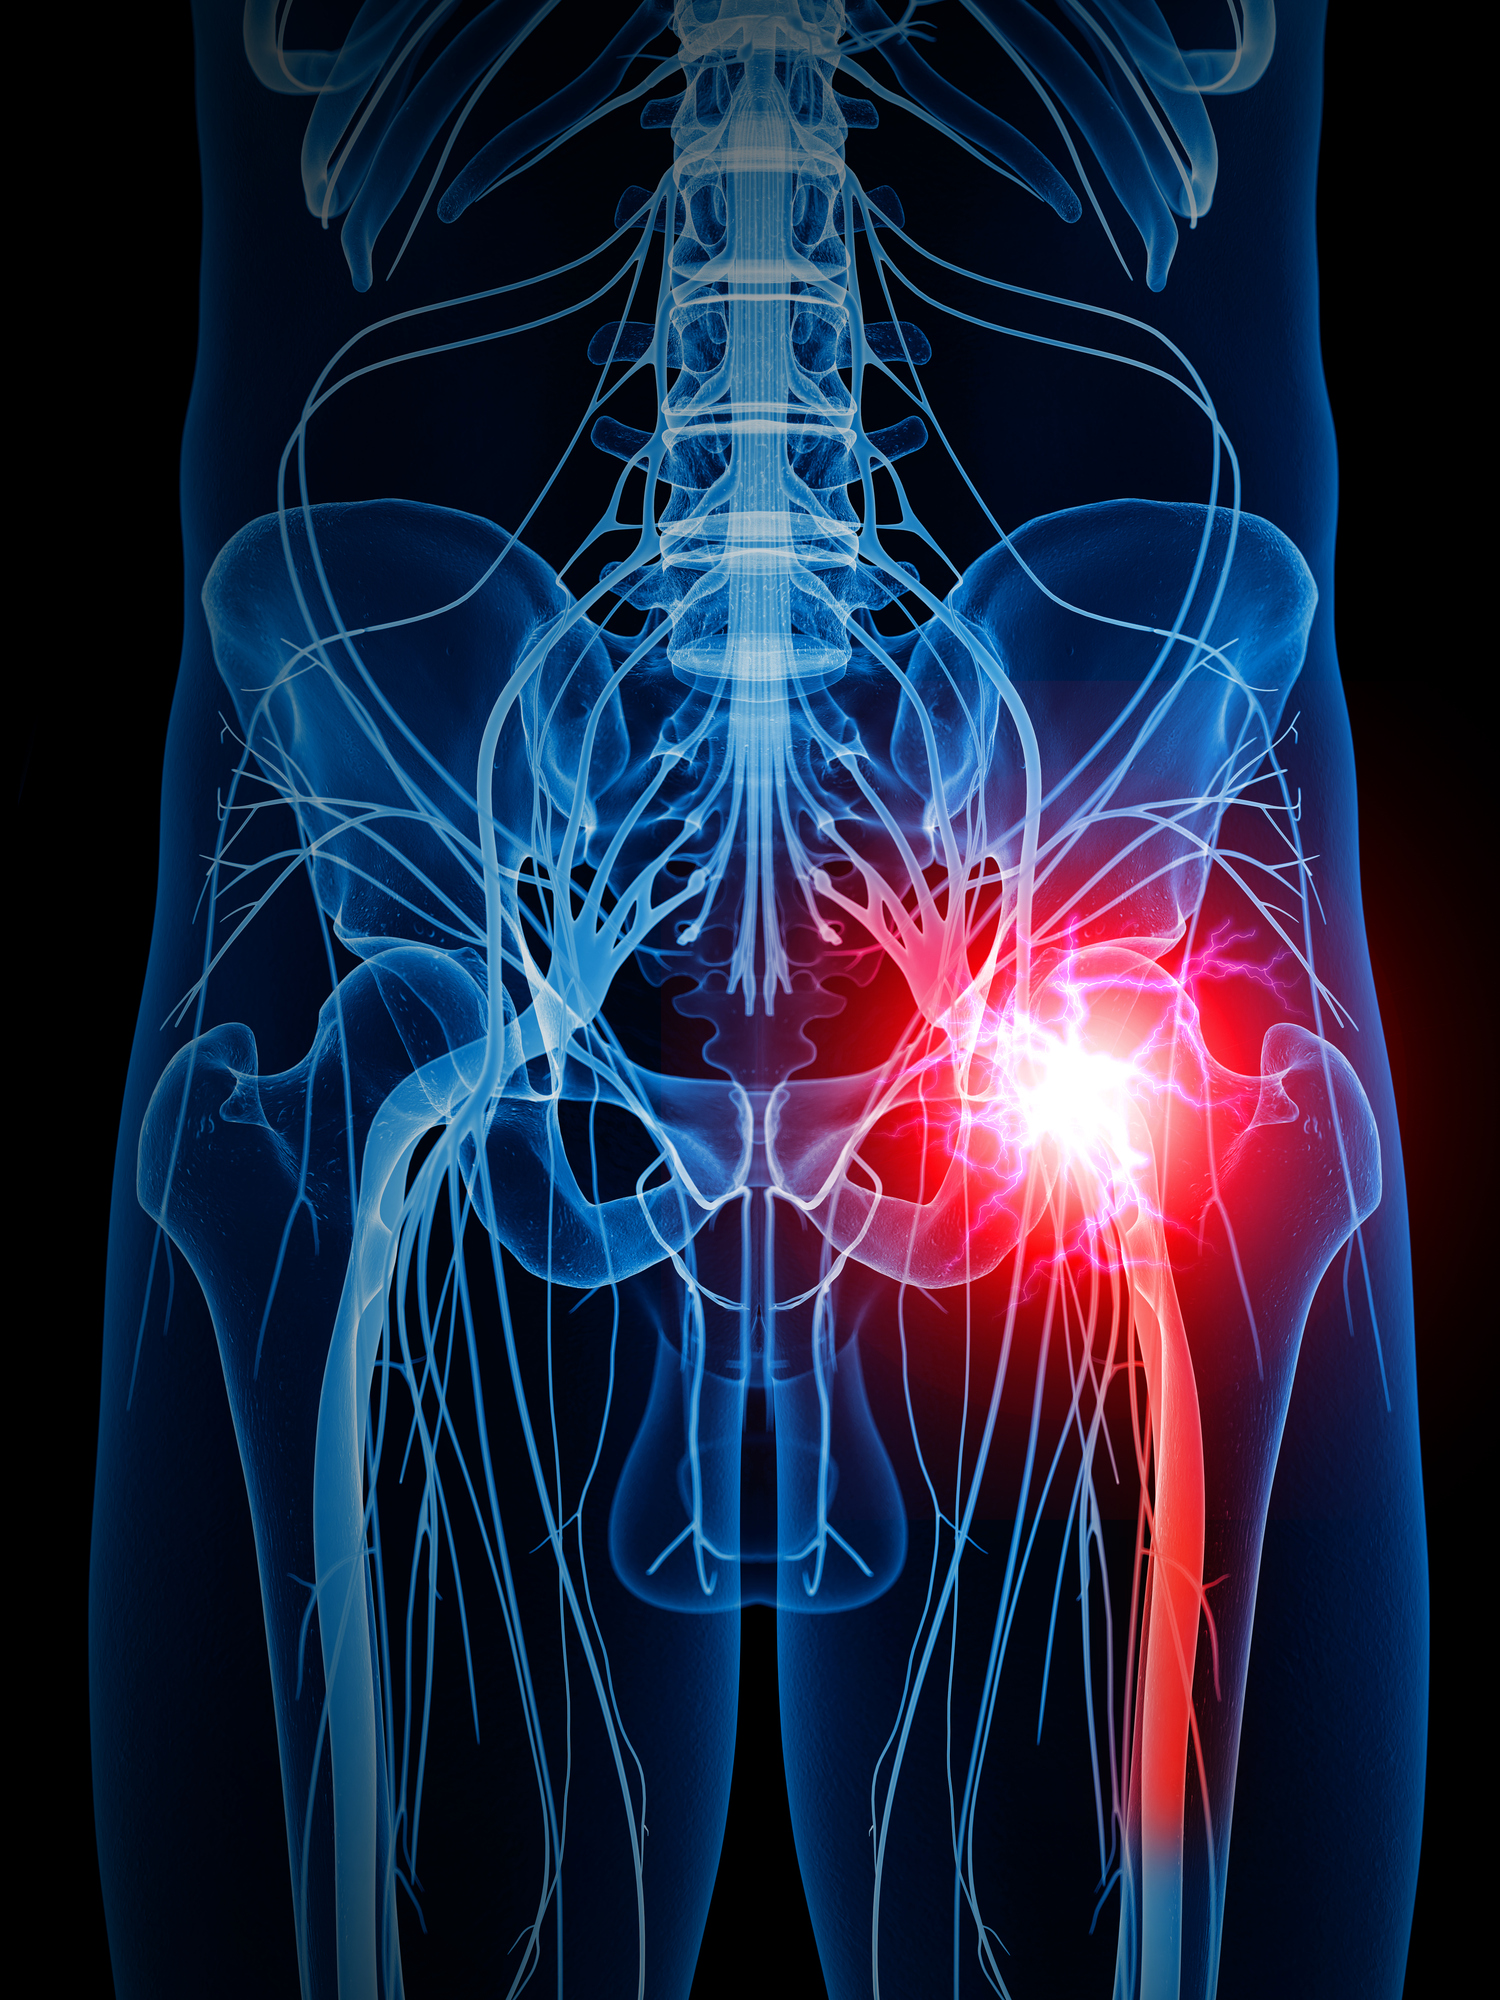 Taming The Pain Of Sciatica For Most People Time Heals And Less Is